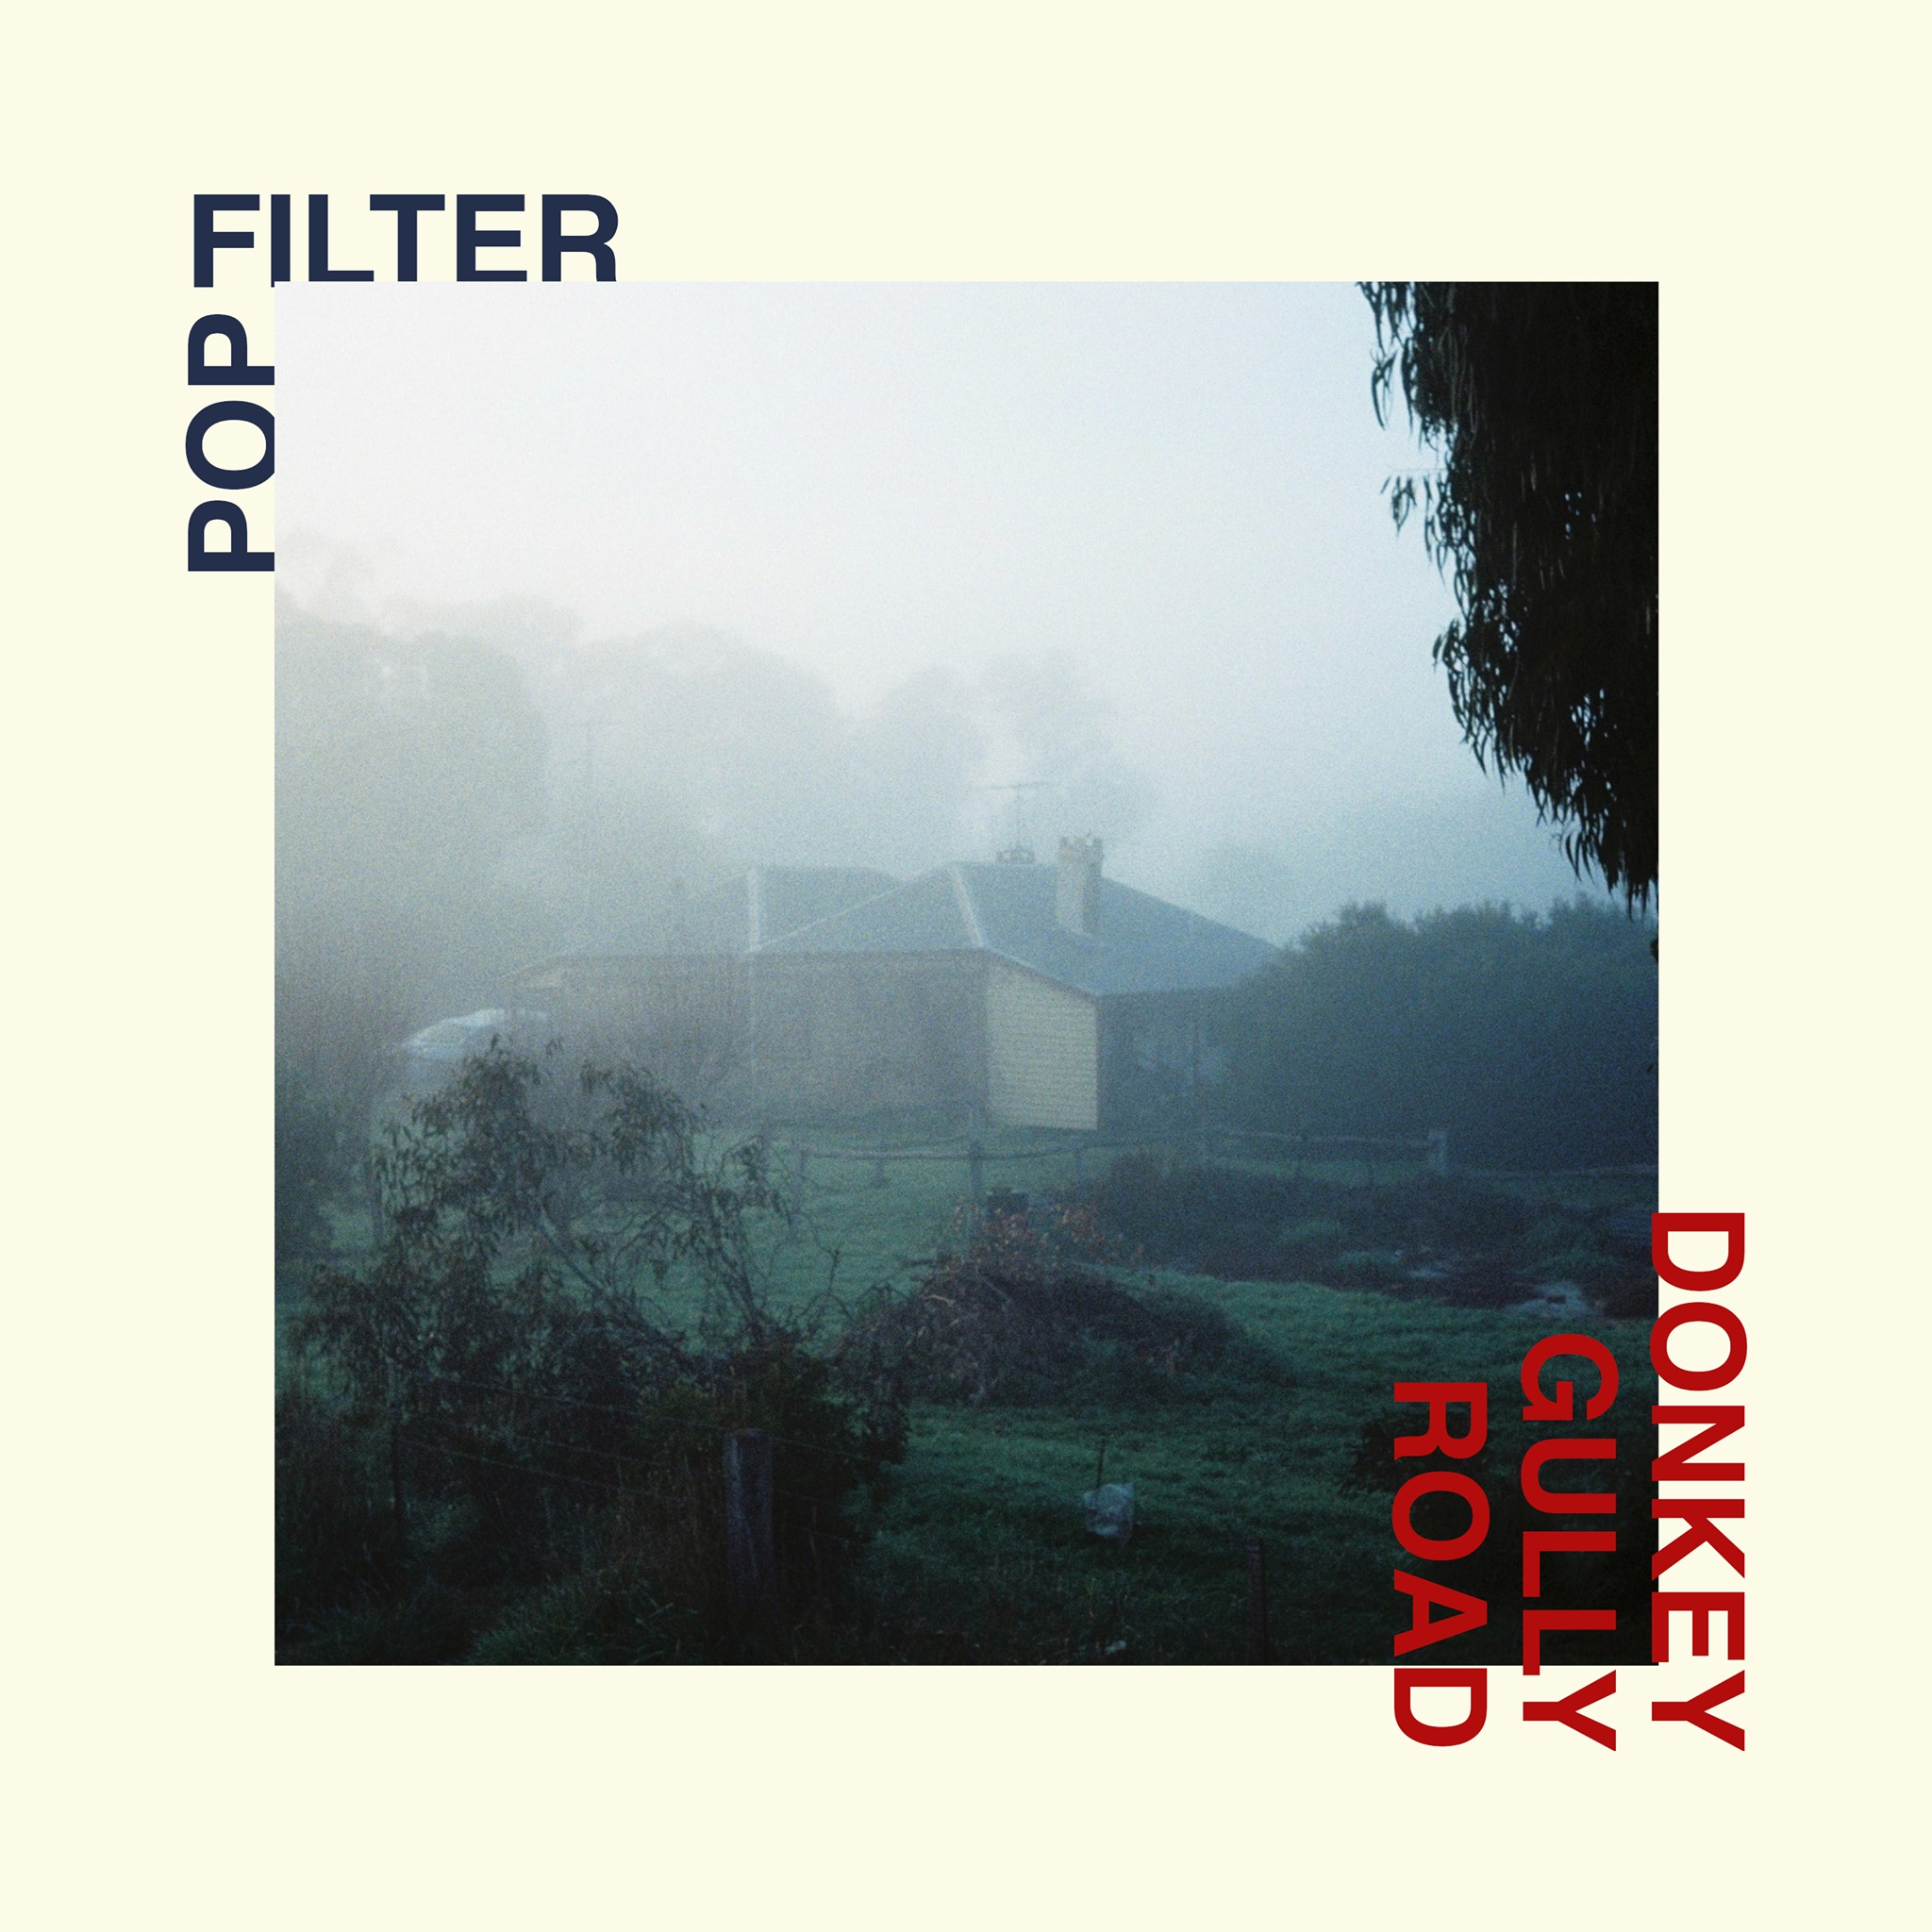 Pop Filter's 'Donkey Gully Road' album cover